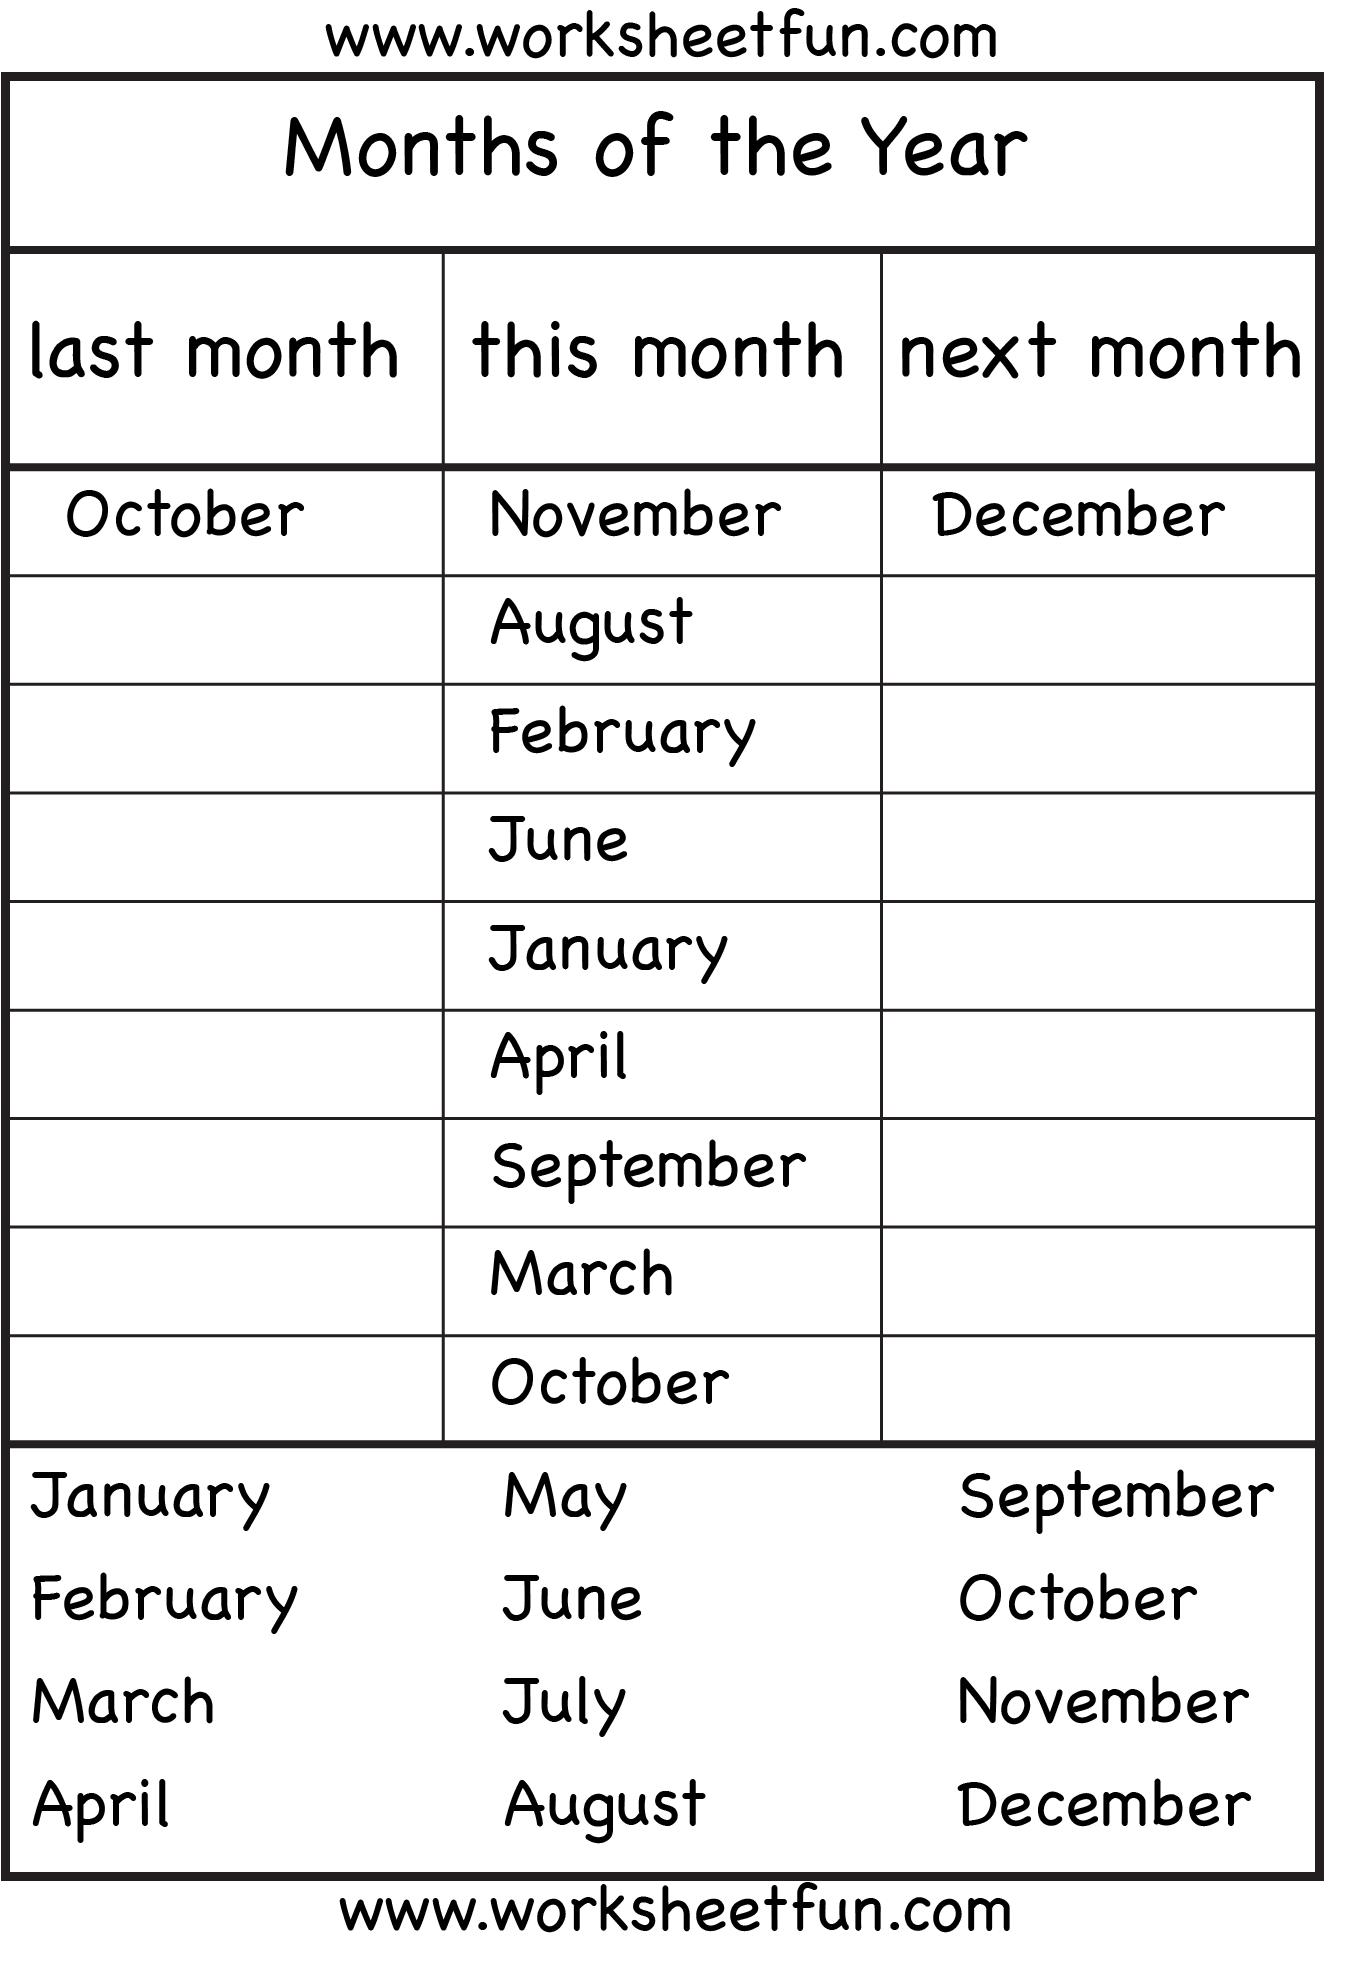 Los Meses En Ingles Months Of The Year 1ª Eval English Class Pinterest